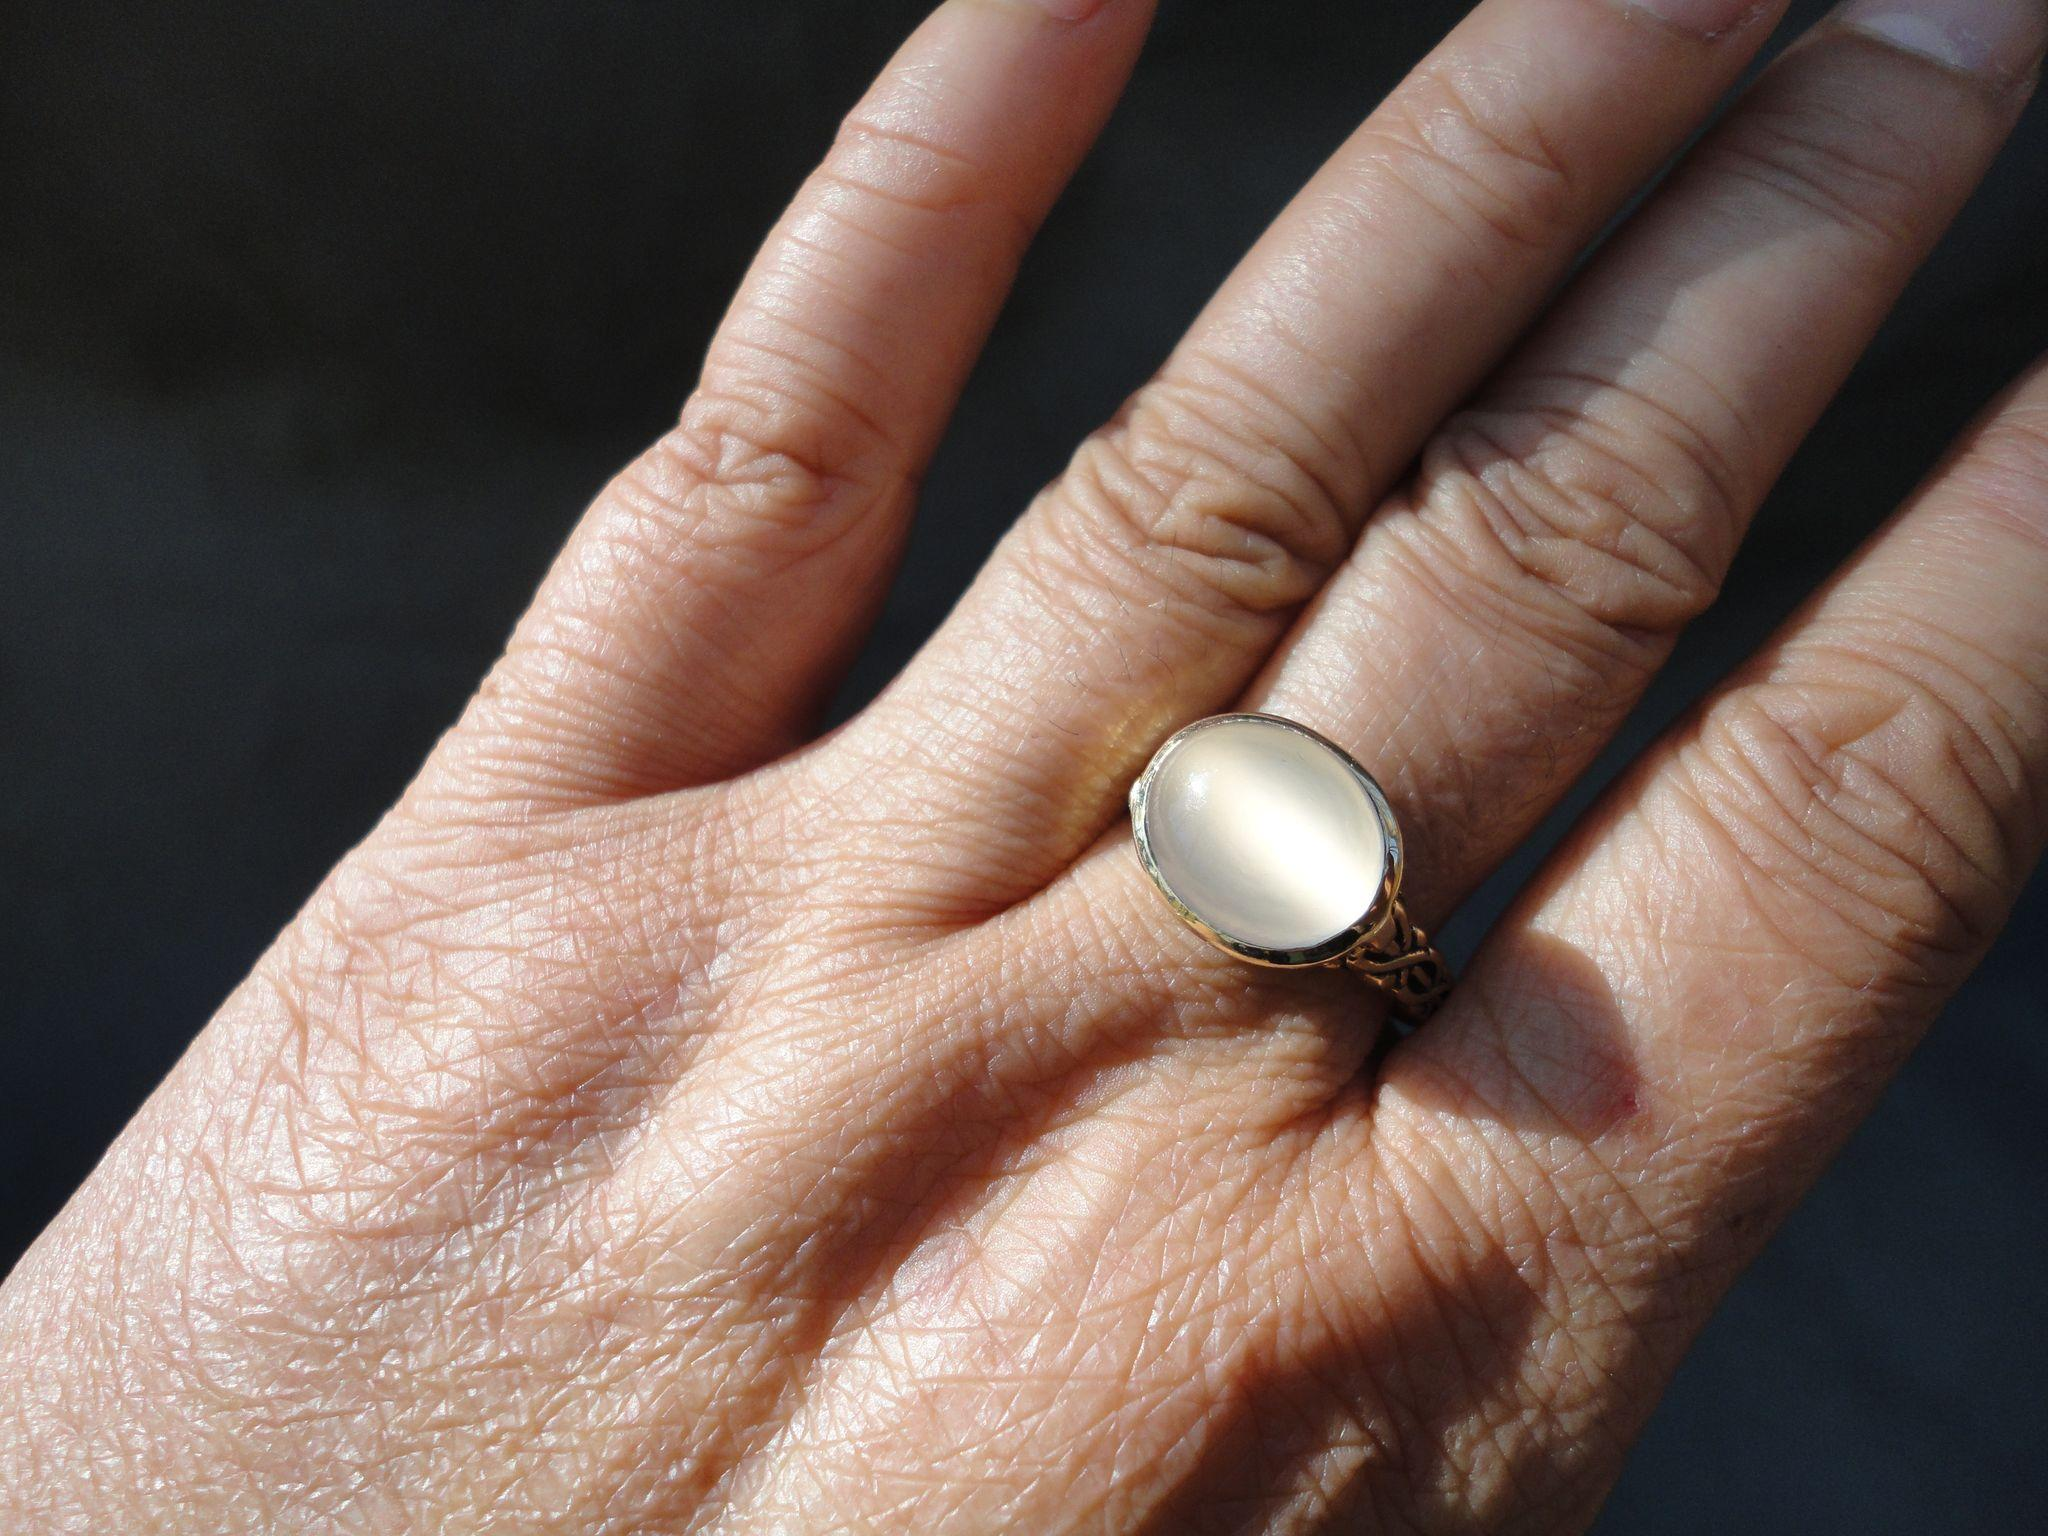 Designer 14k Yellow Gold 4 ct hinged wedding ring Roll over Large image to magnify click Large image to zoom